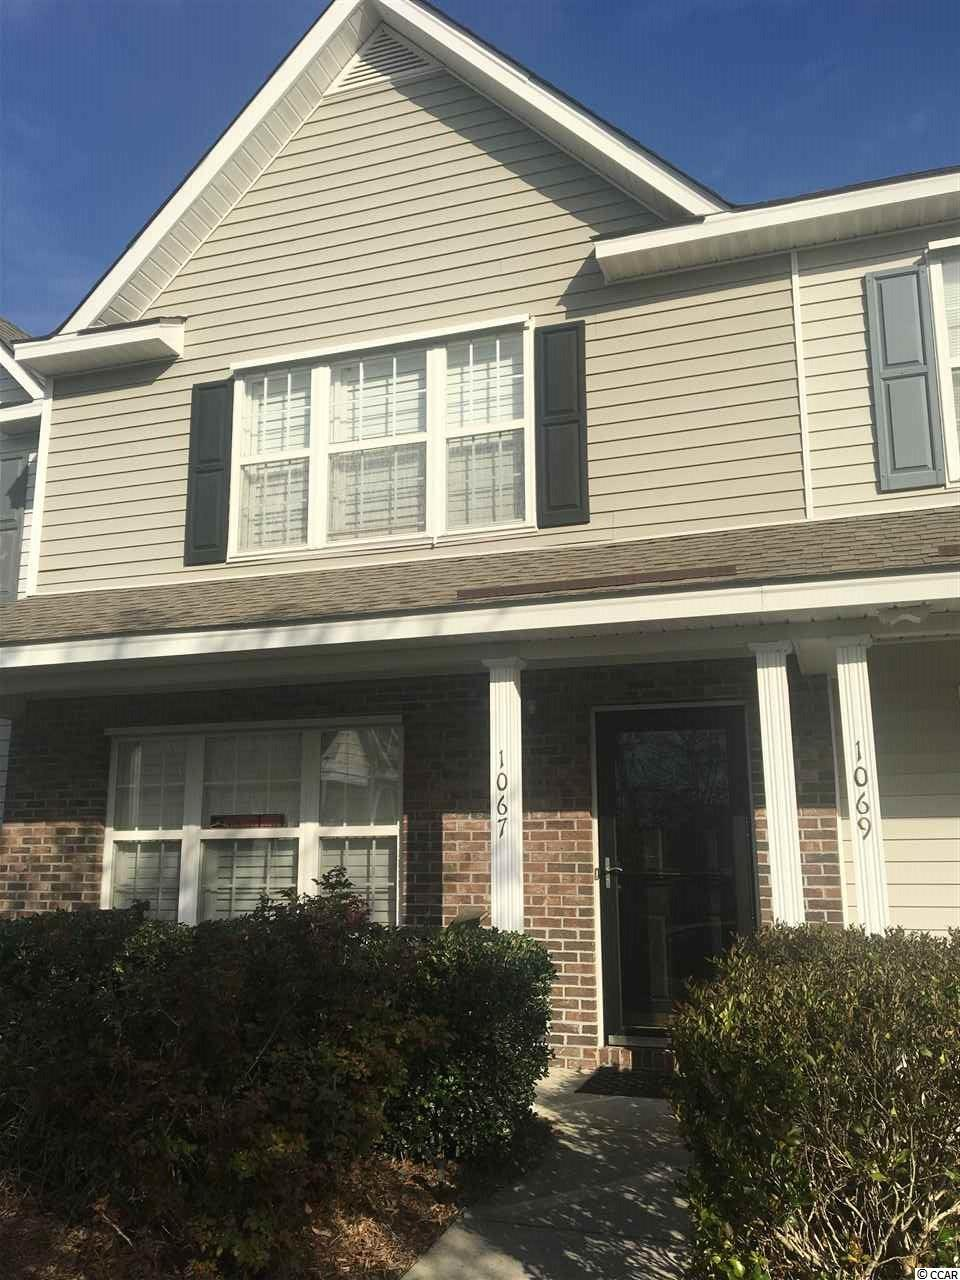 Townhouse MLS:1805217 PARKVIEW SUBDIVISION - 17TH AVE.  1067 Pinnacle lane Myrtle Beach SC